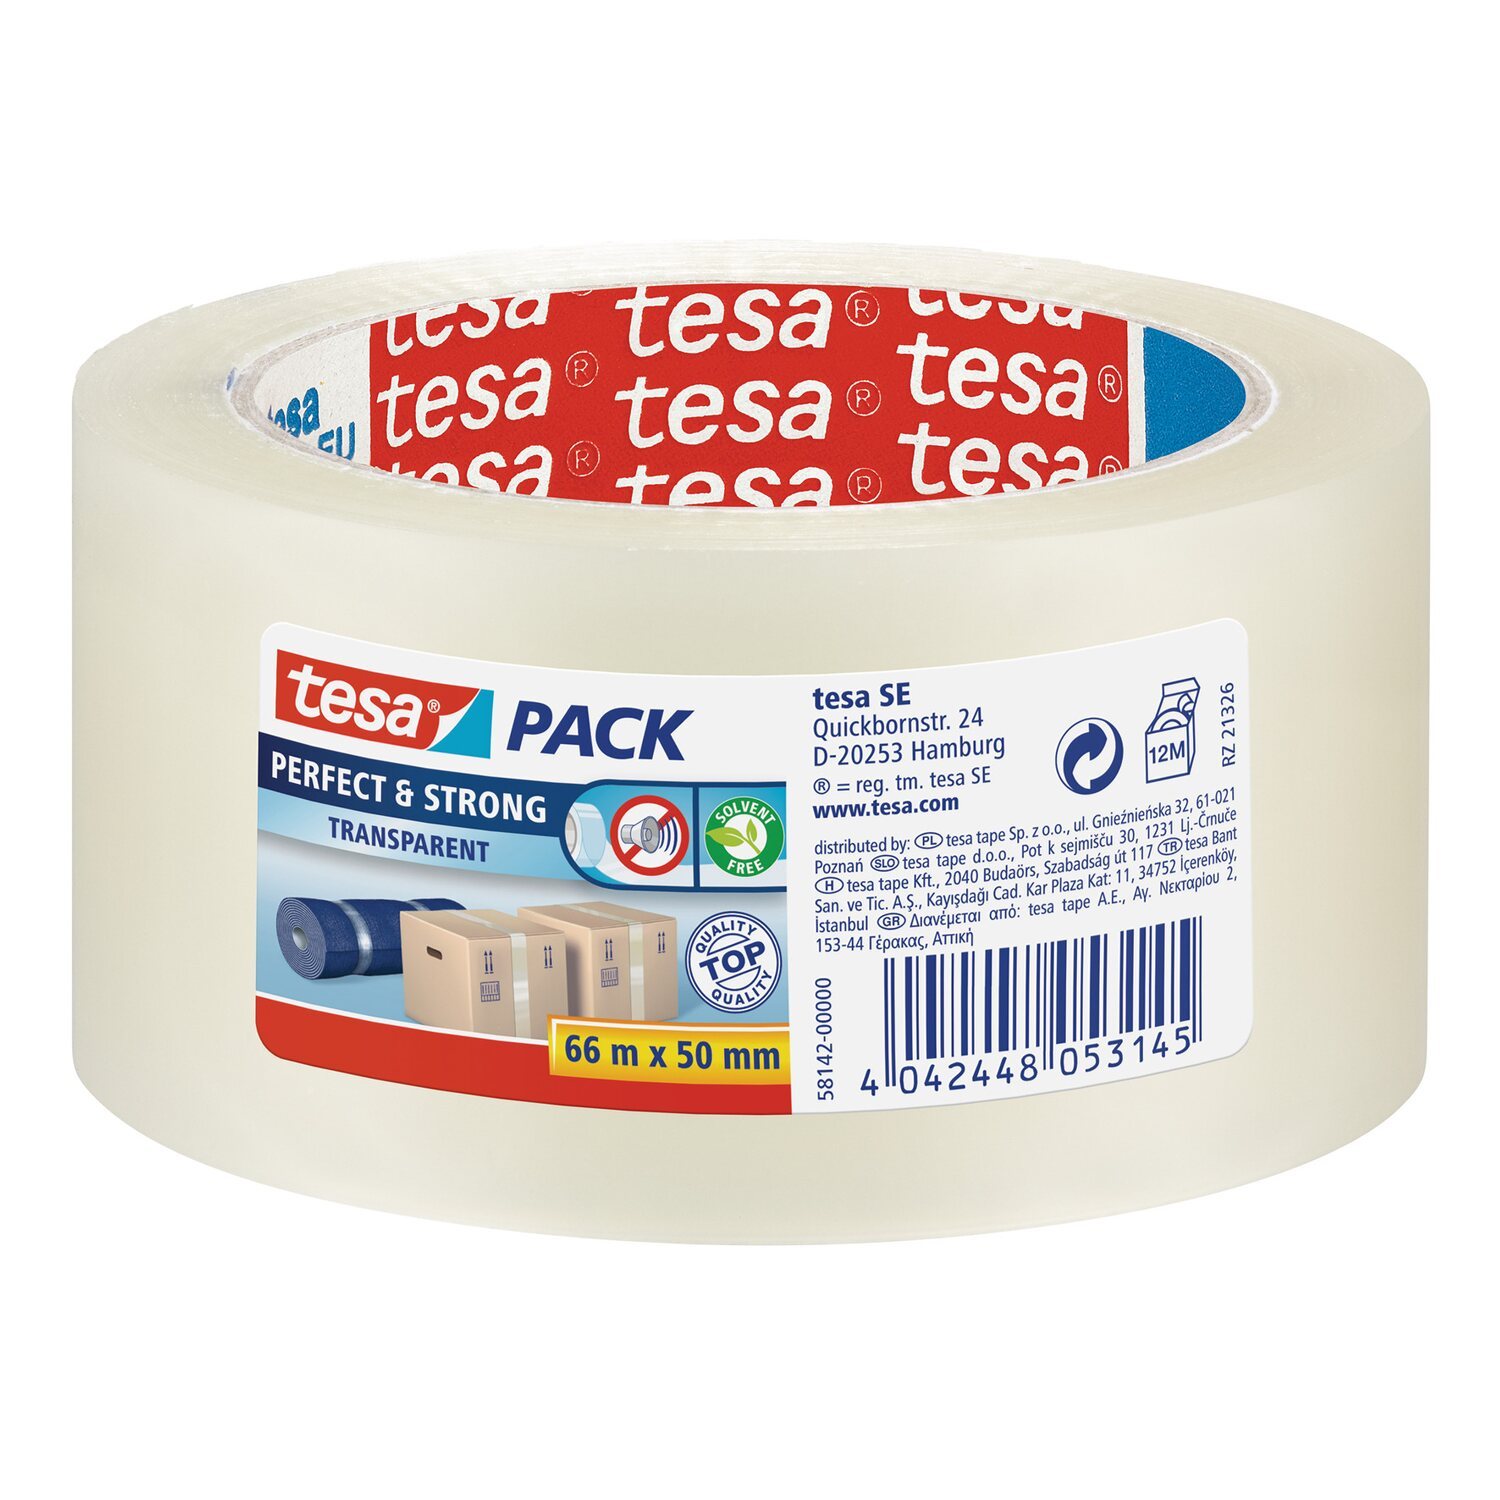 Tesa Pack Perfect & Strong Transparent 66 m x 50 mm